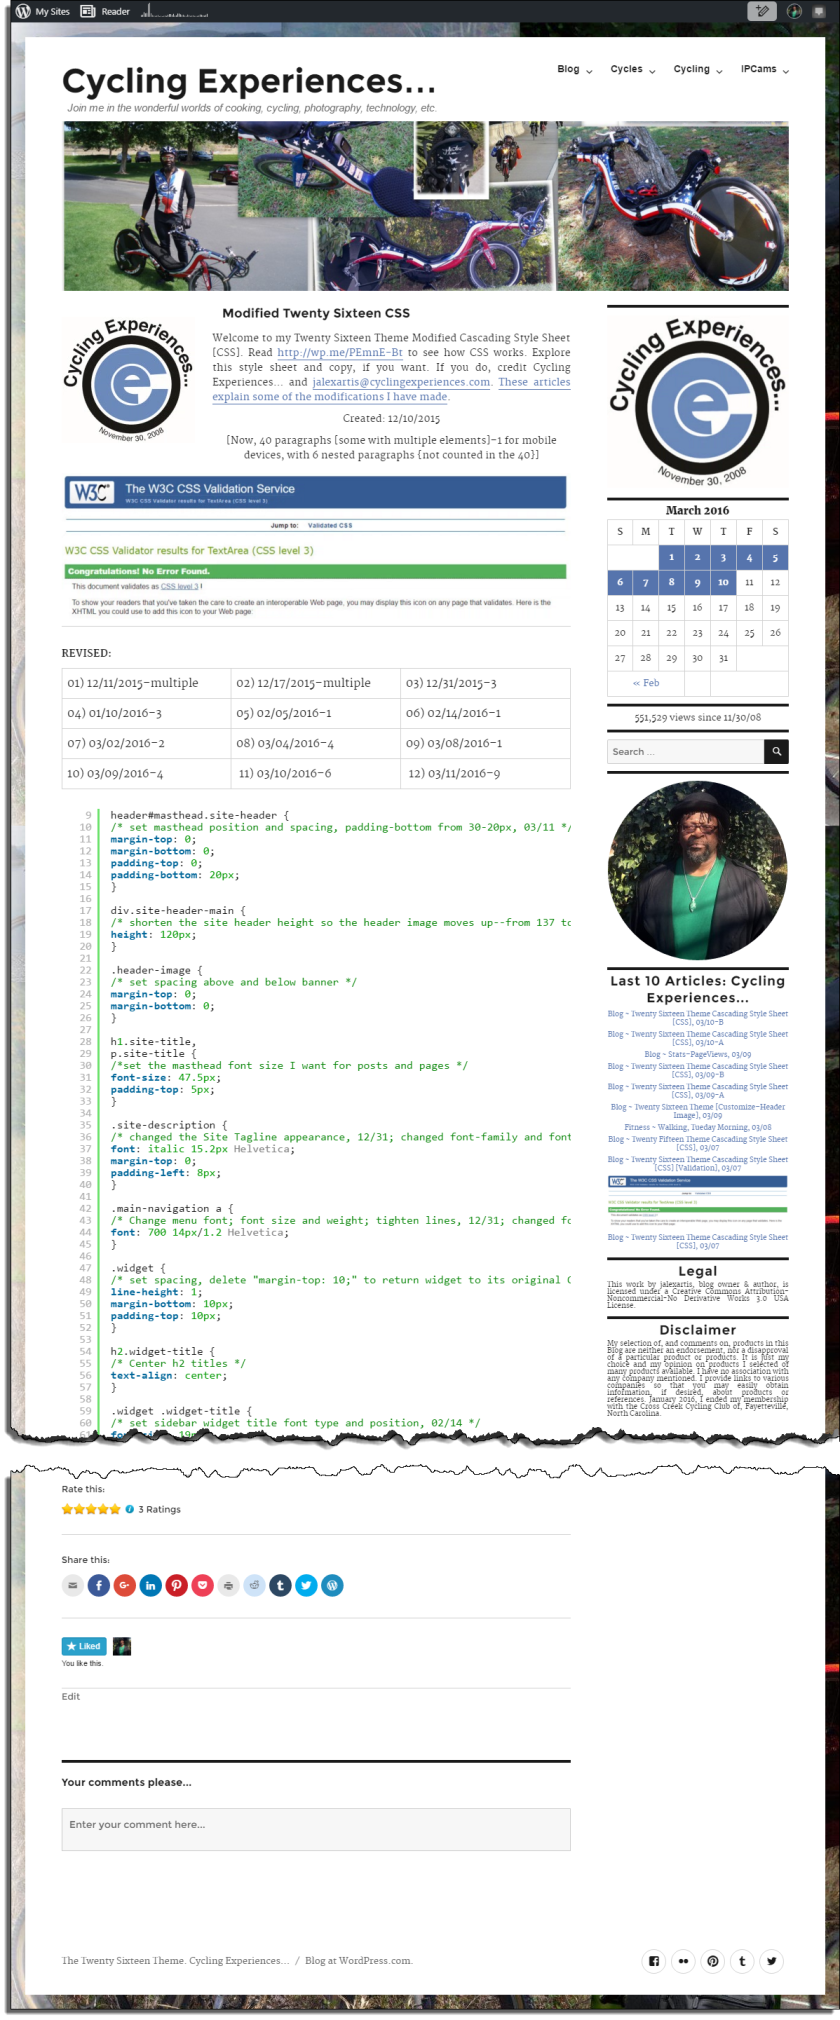 2016-03-11_12-55-07 Full Page